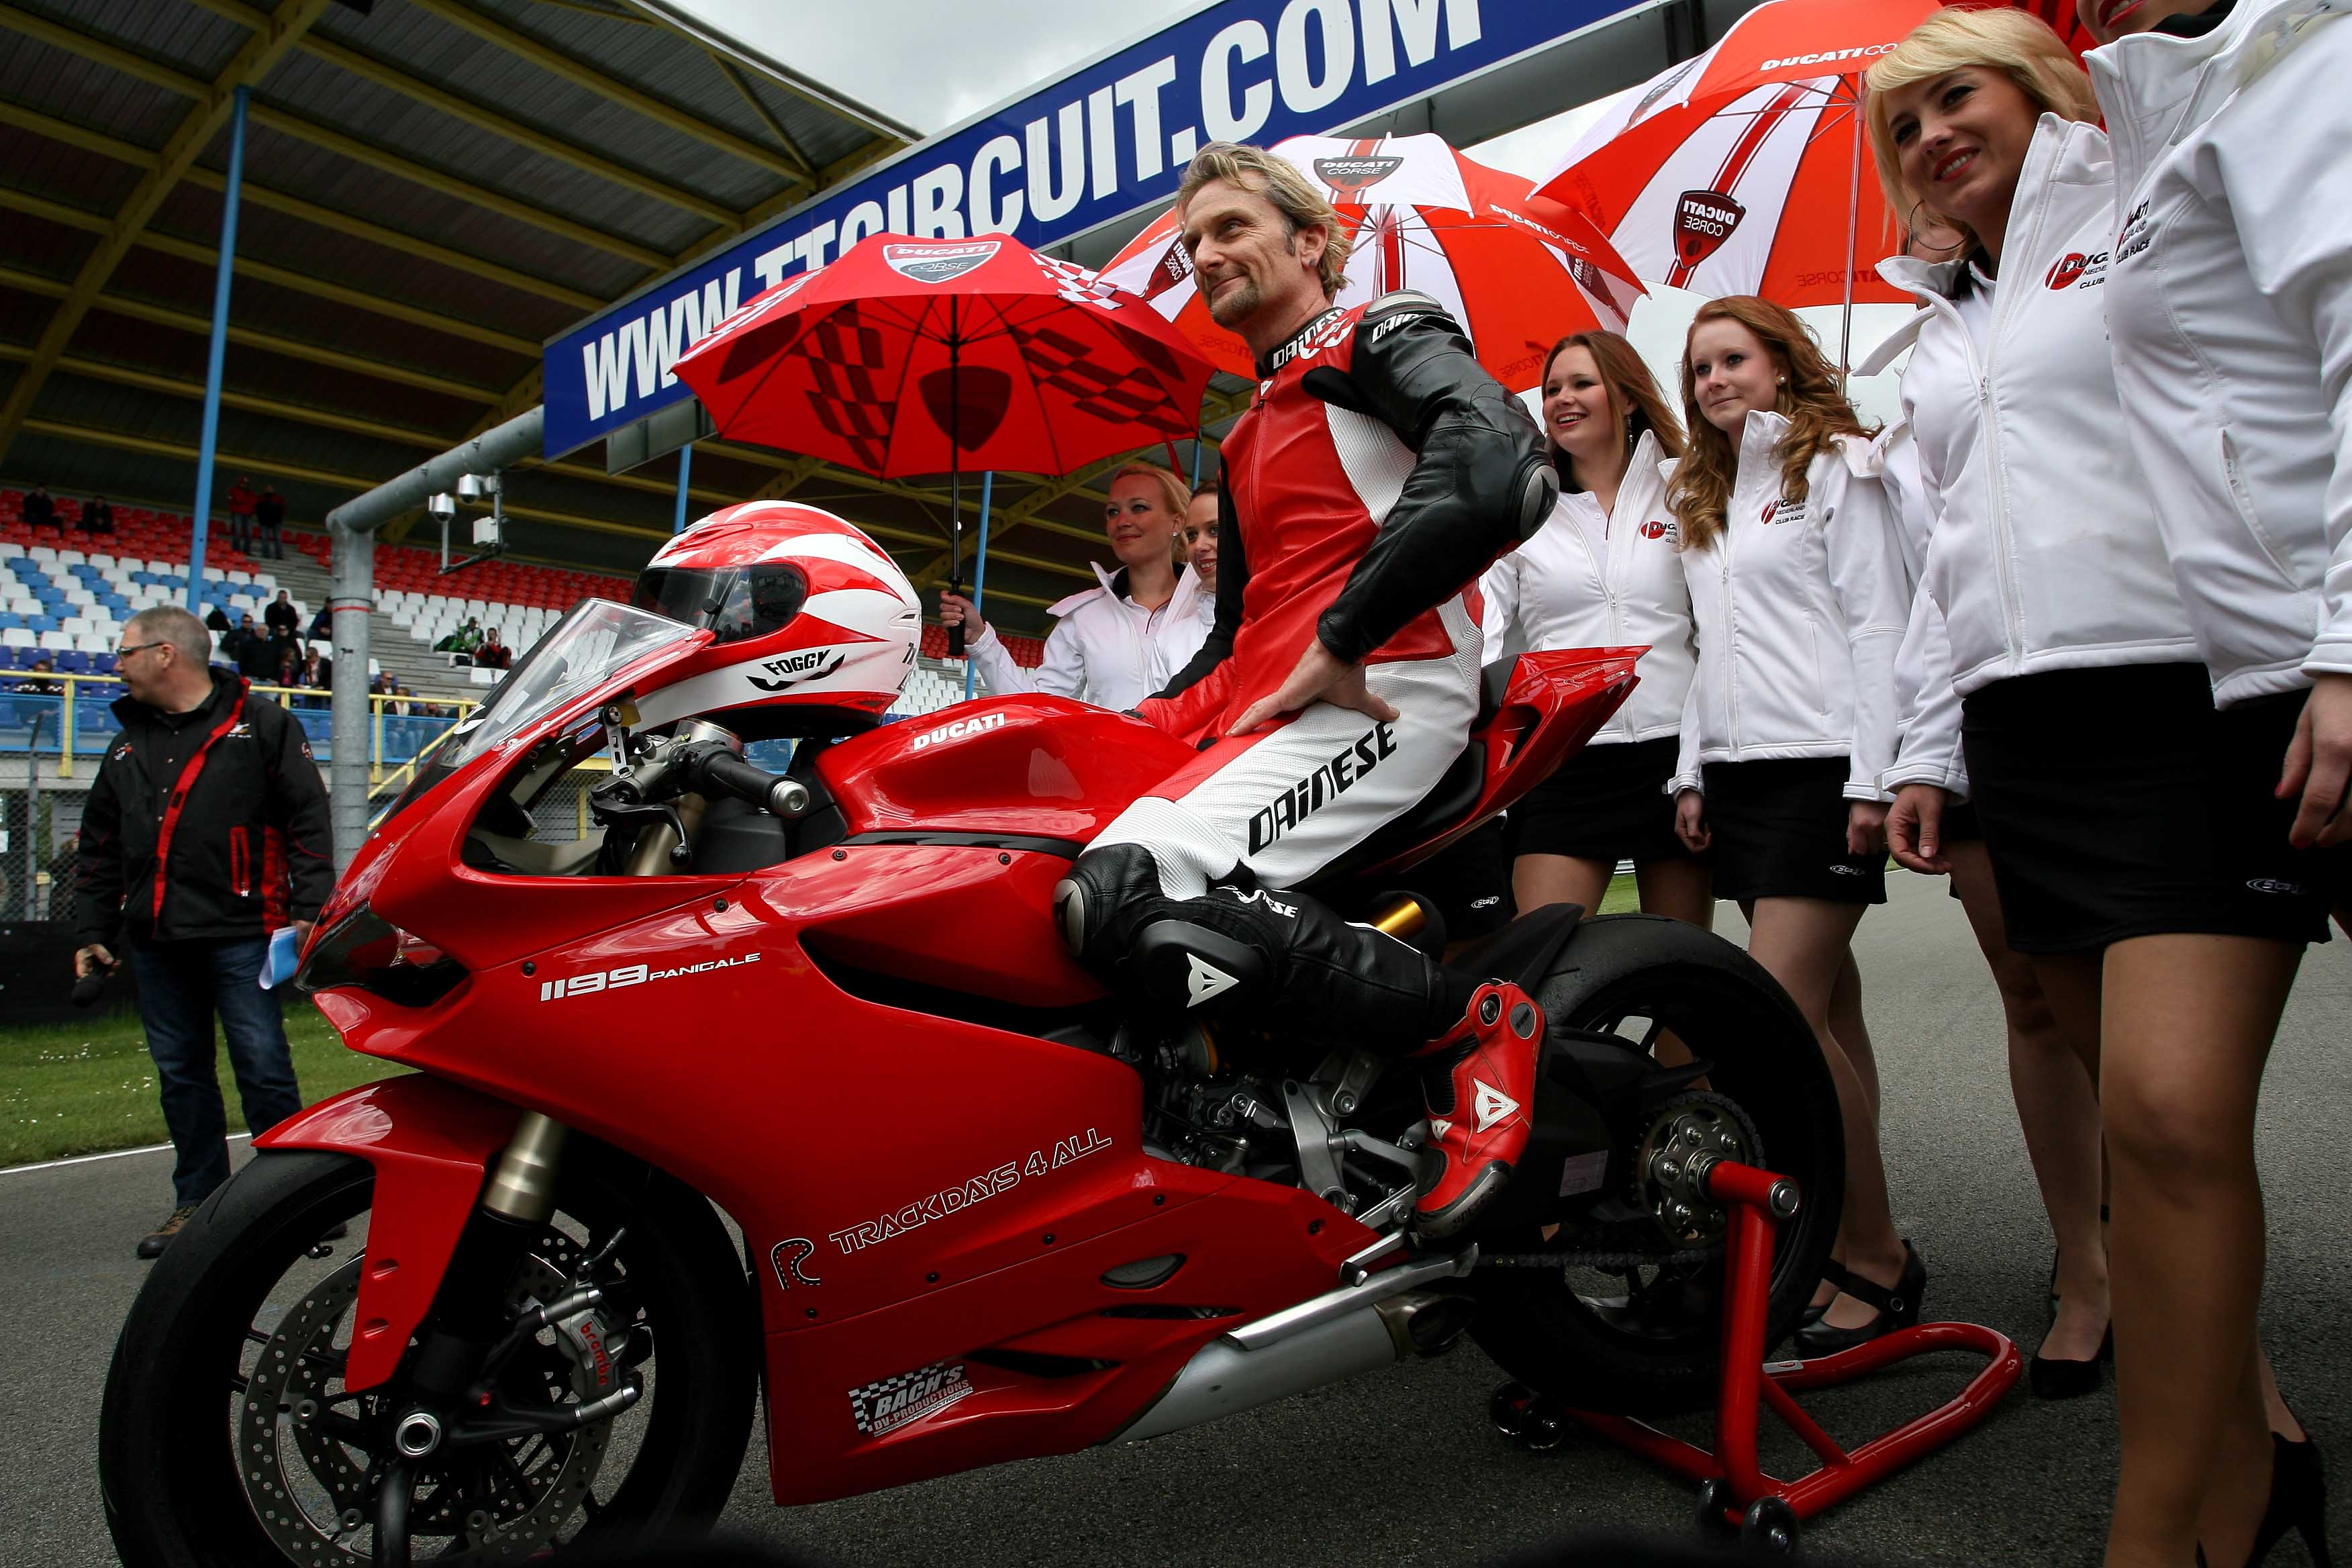 carlfogarty_assen2012_0046_LOW_RES